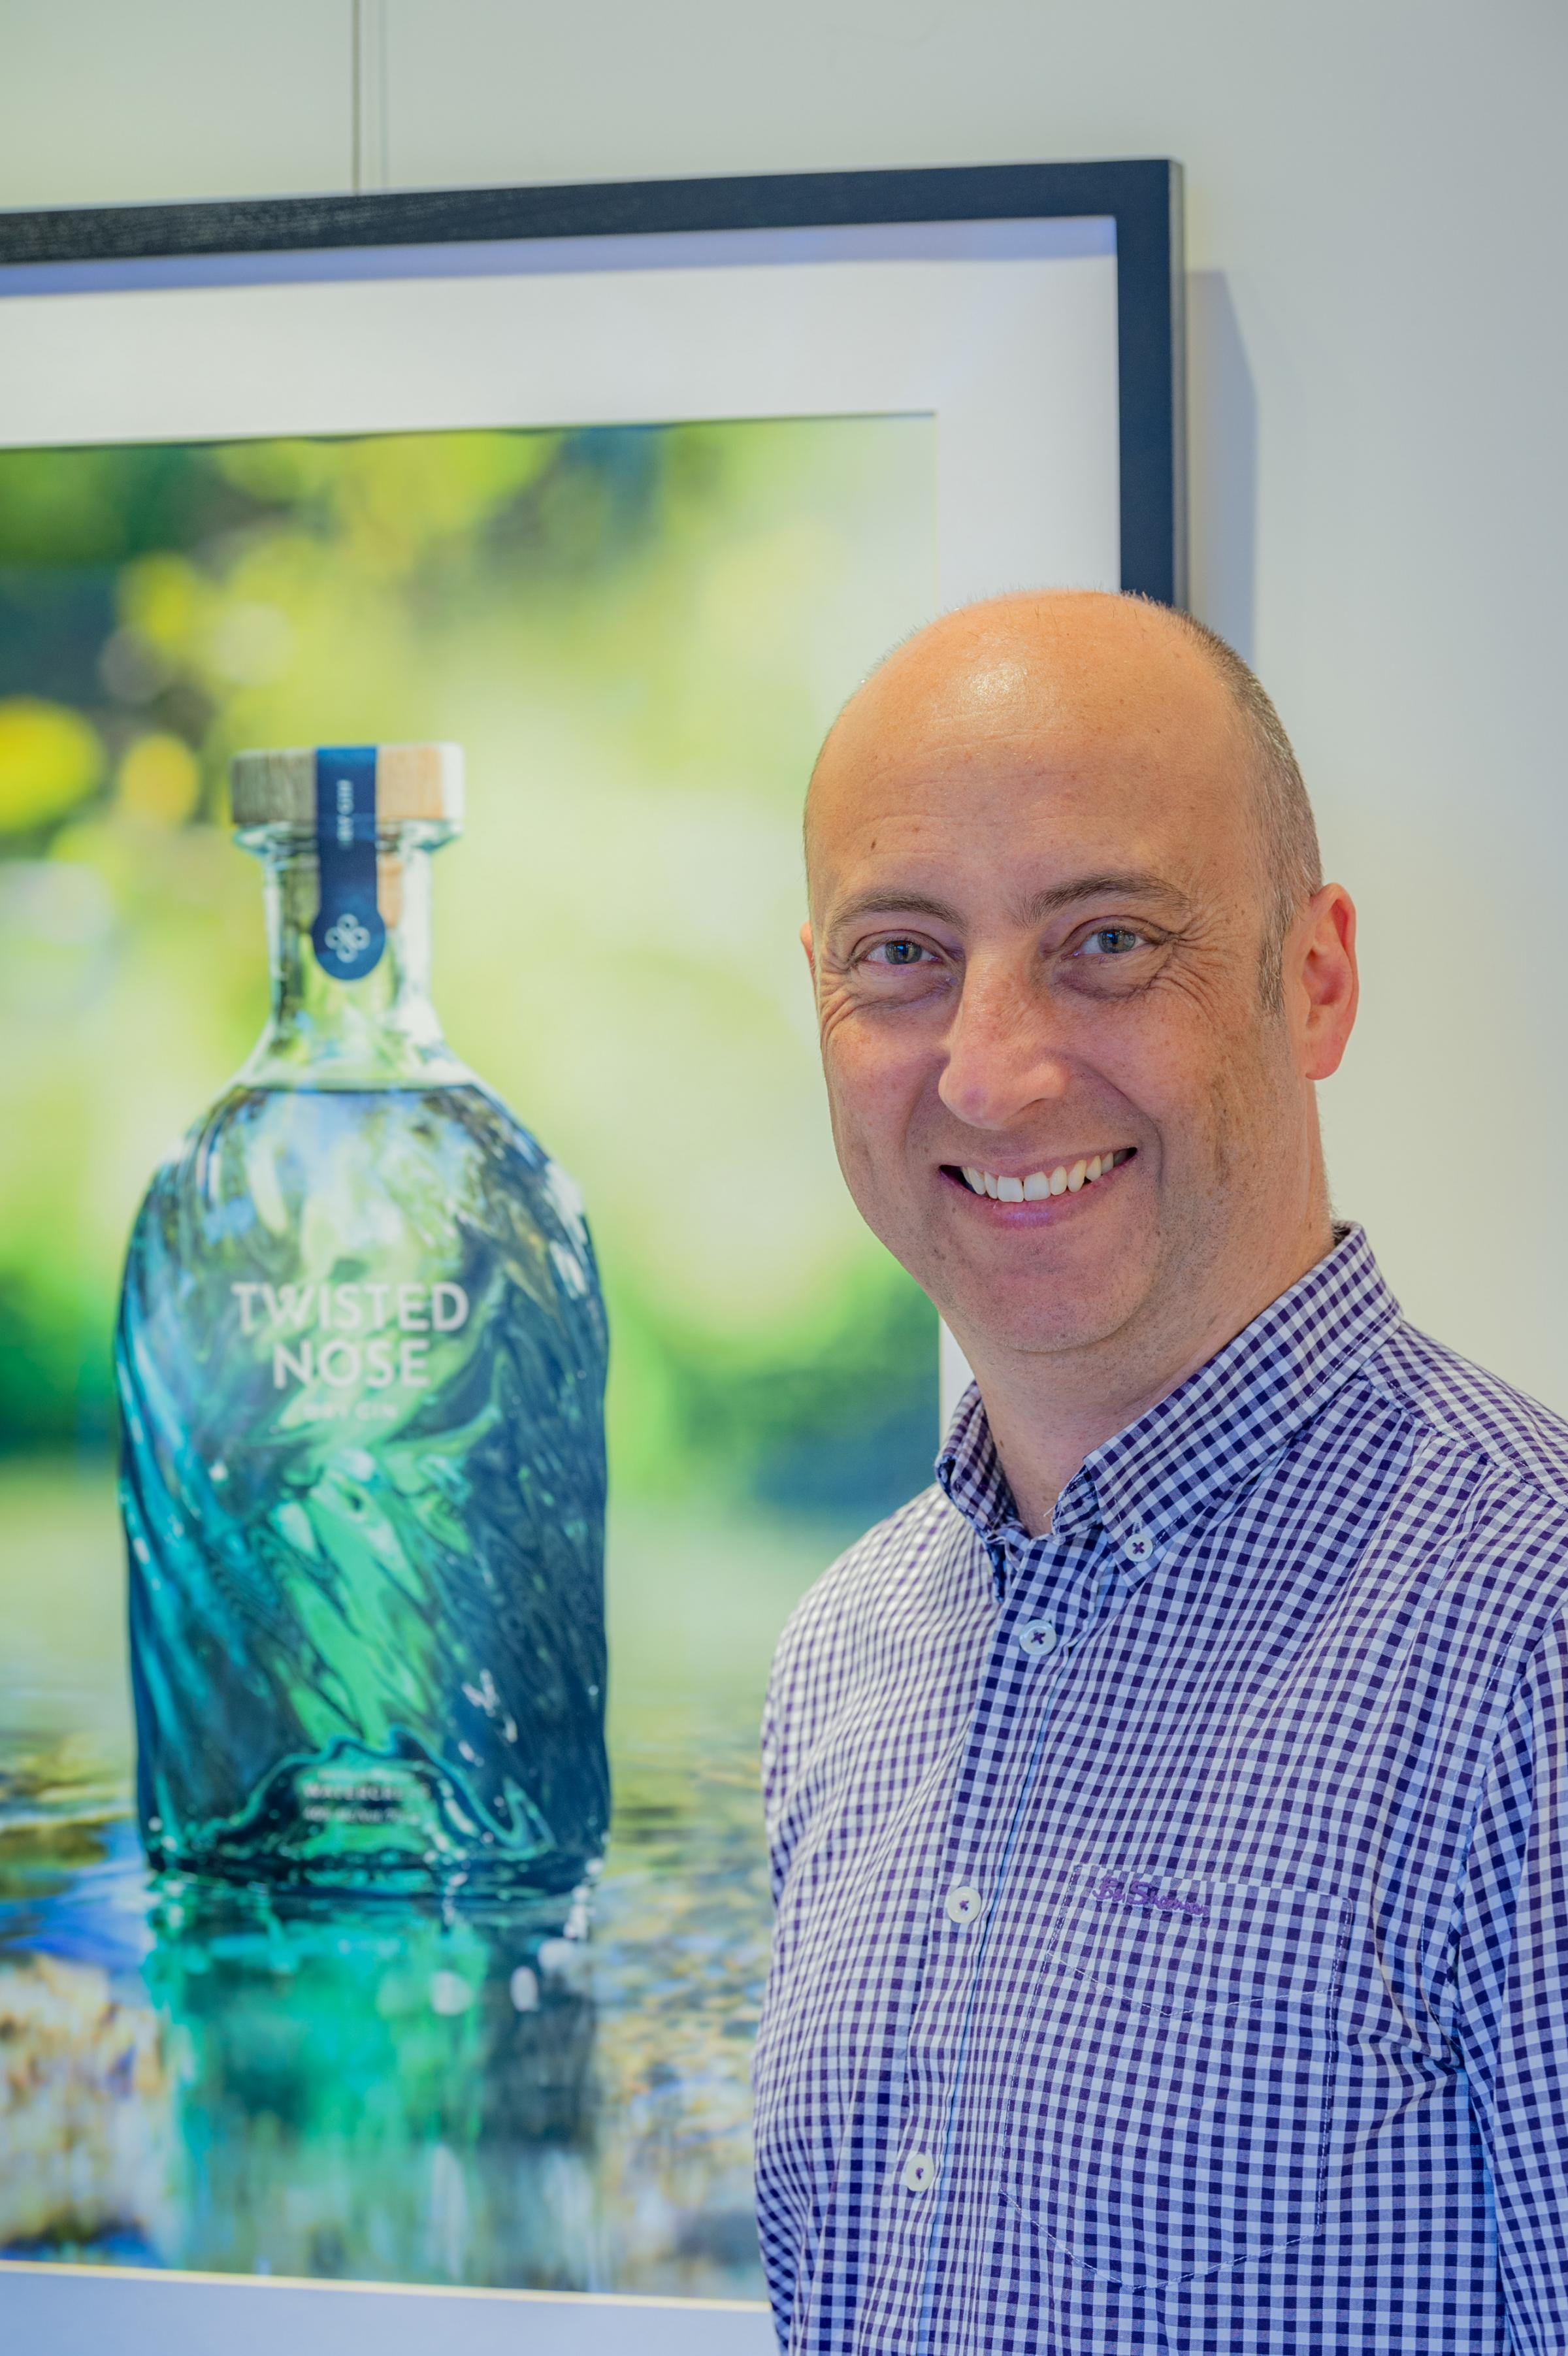 Winchester Distillery unveils new eco-friendly bottle for Twisted Nose gin